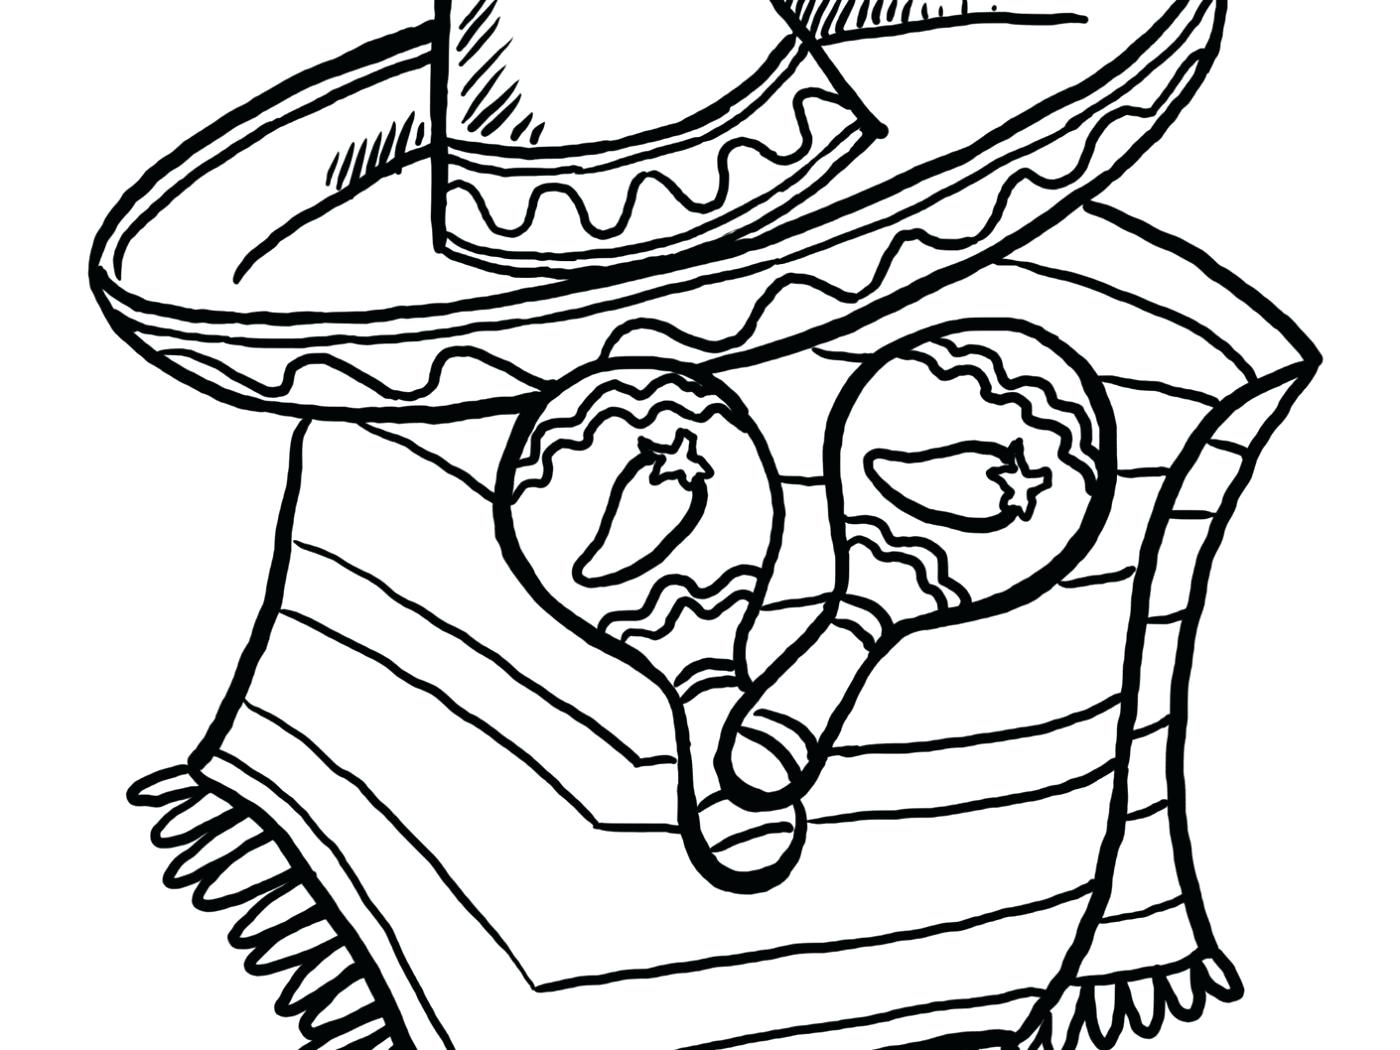 1400x1050 Coloring Pages Mexico Coloring Pages Best Sheets Free Mexican